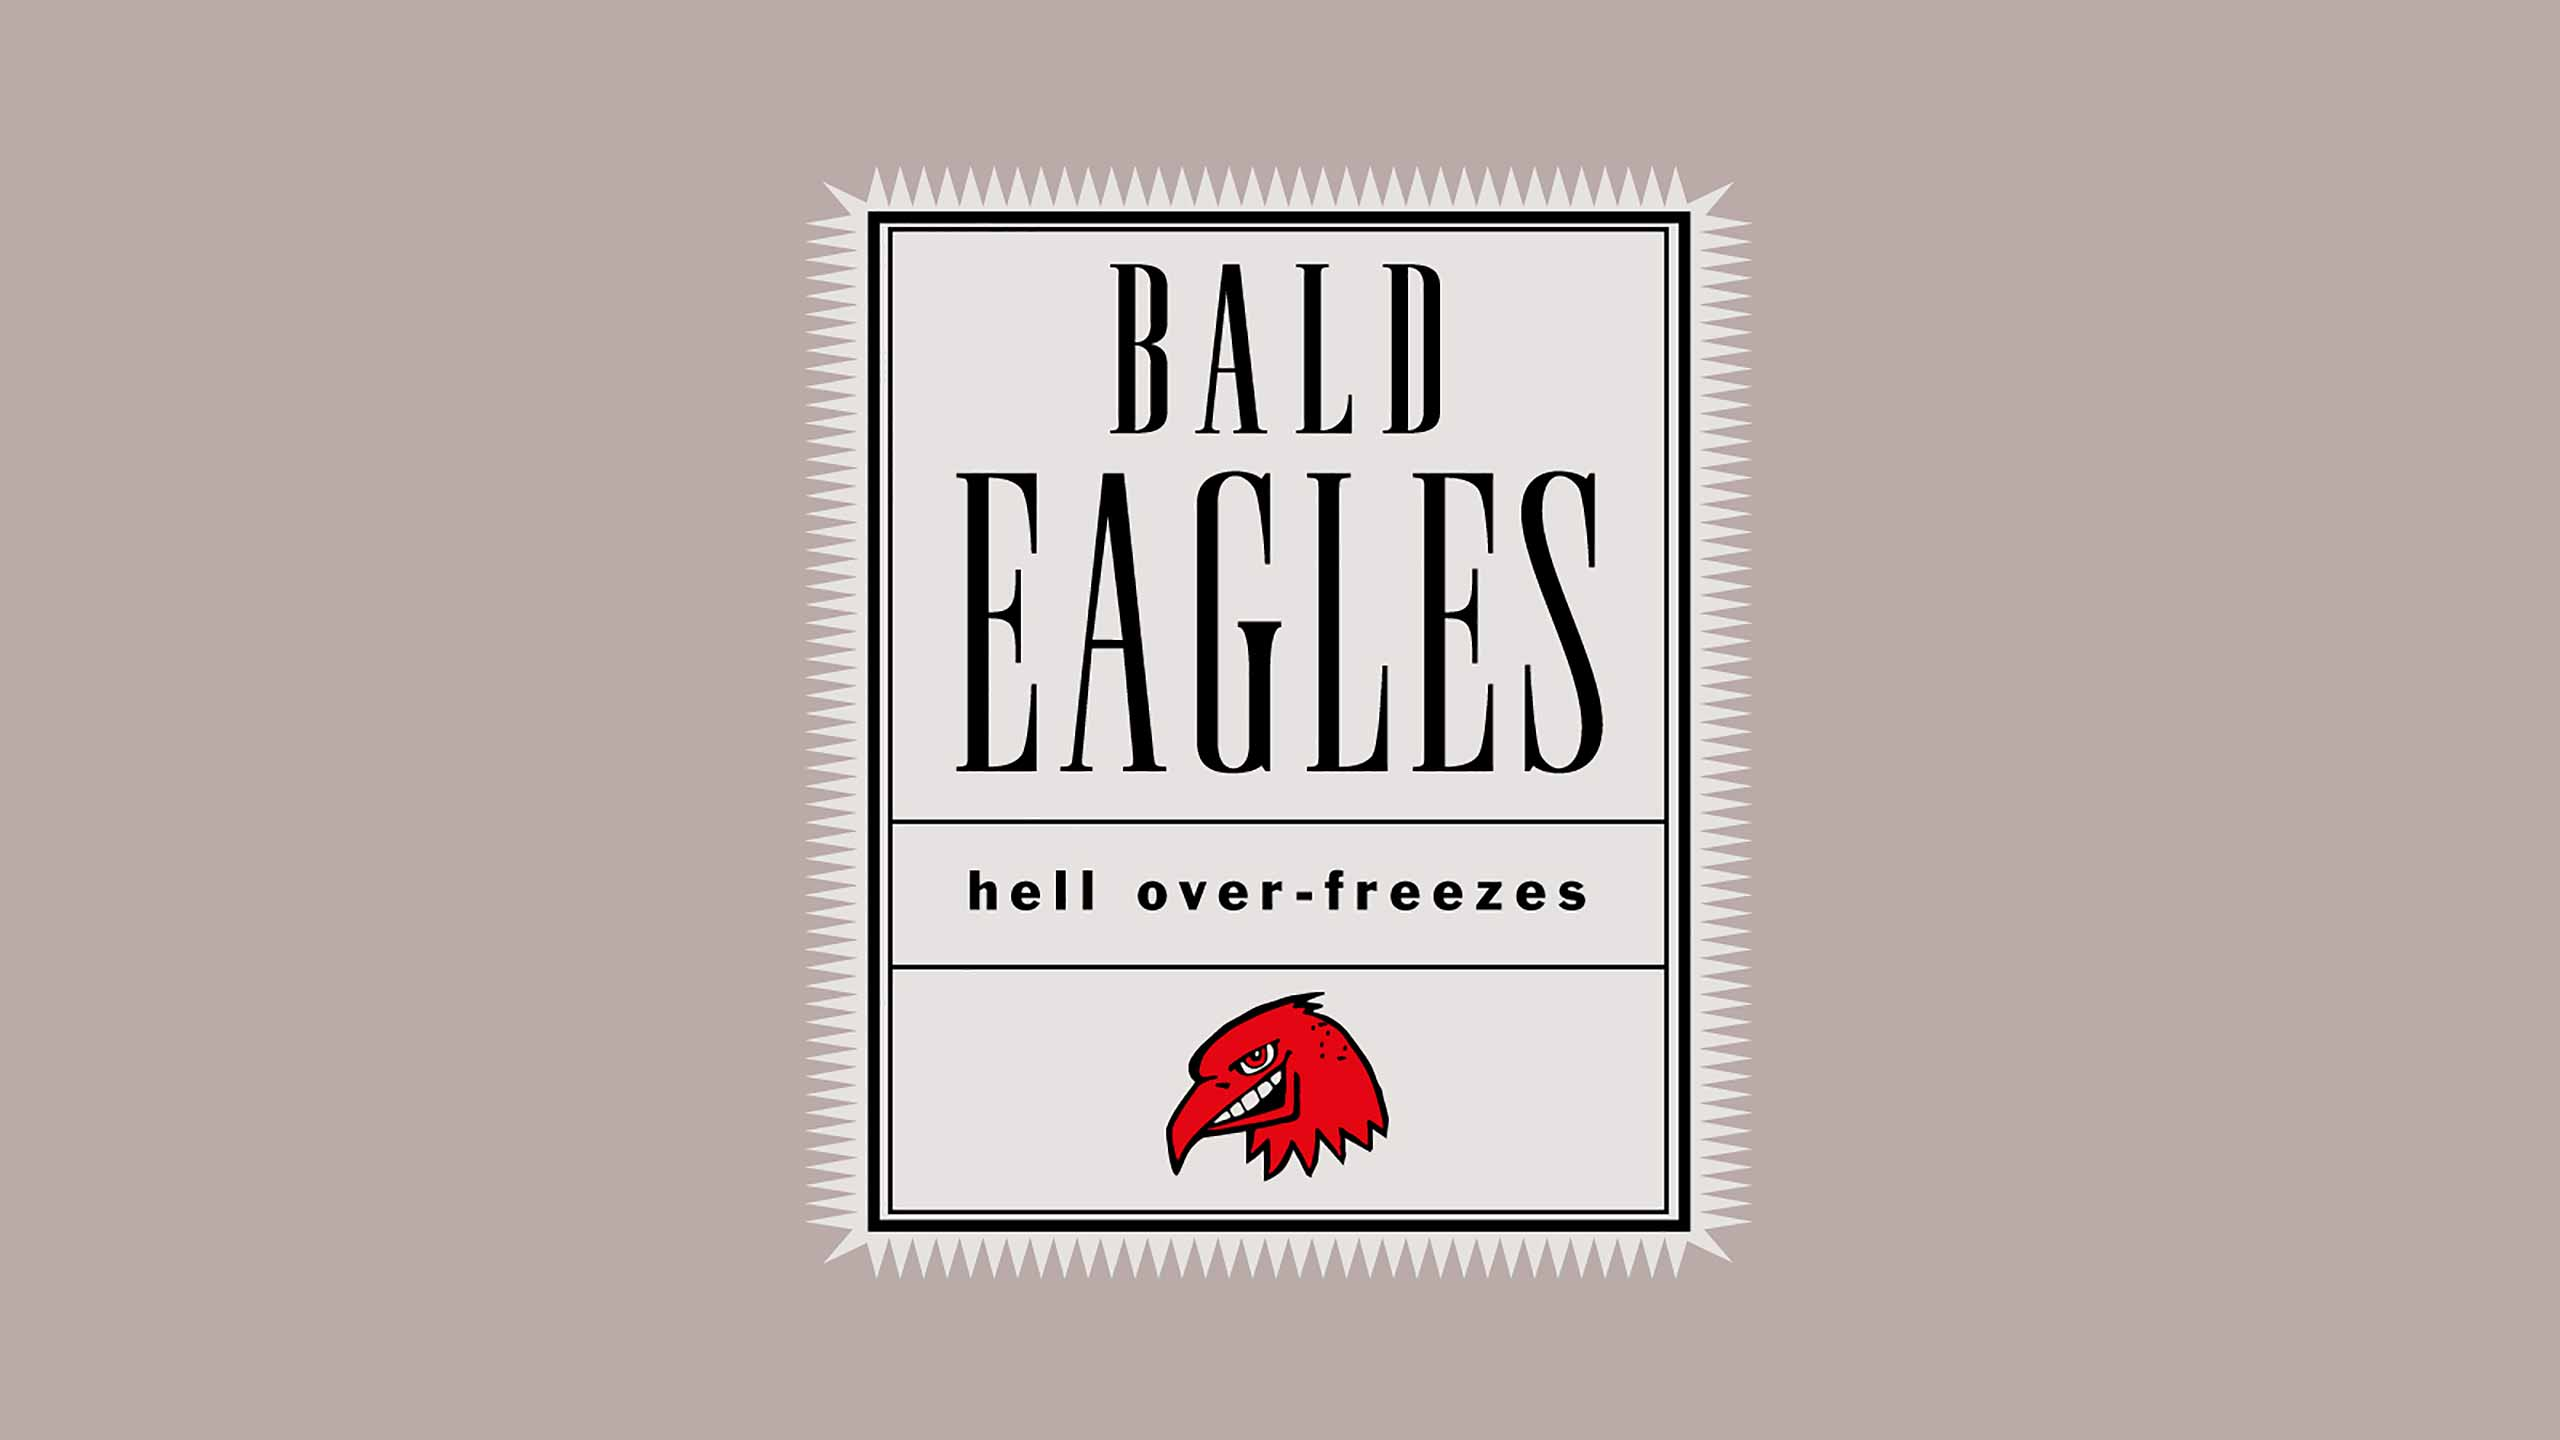 bald-eags_hell_icon_v2a